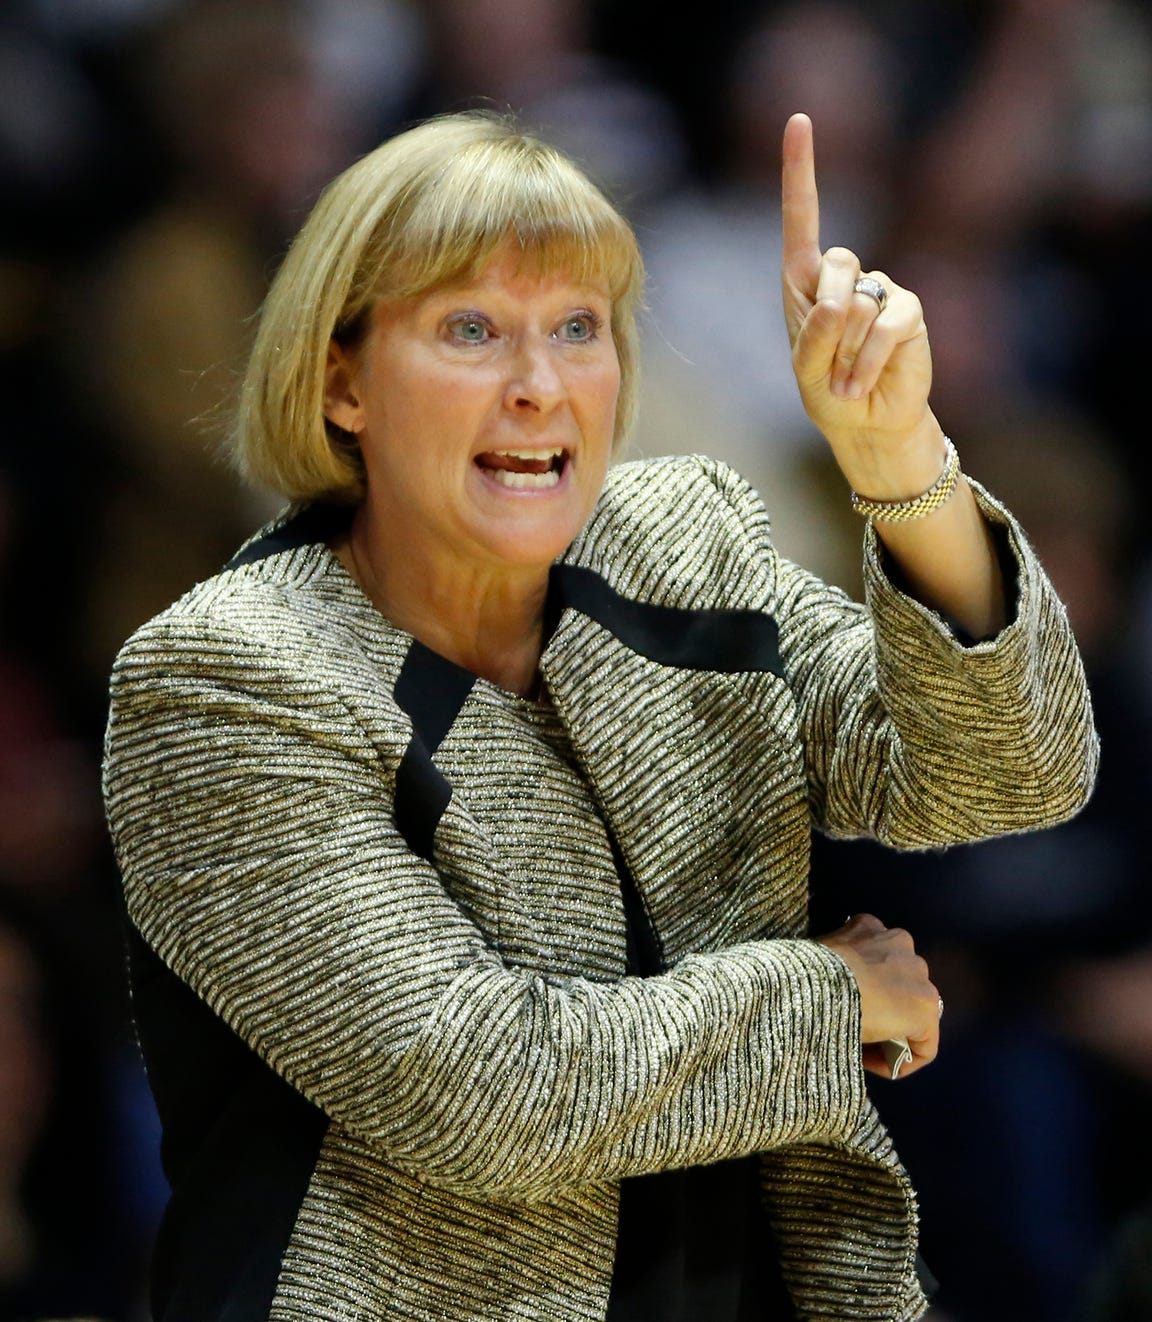 Purdue head coach Sharon Versyp calls out a play as the Boilermakers battle South Carolina Sunday, December 16, 2018, at Mackey Arena. Purdue lost a heart breaker to South Carolina 82-73 2OT.